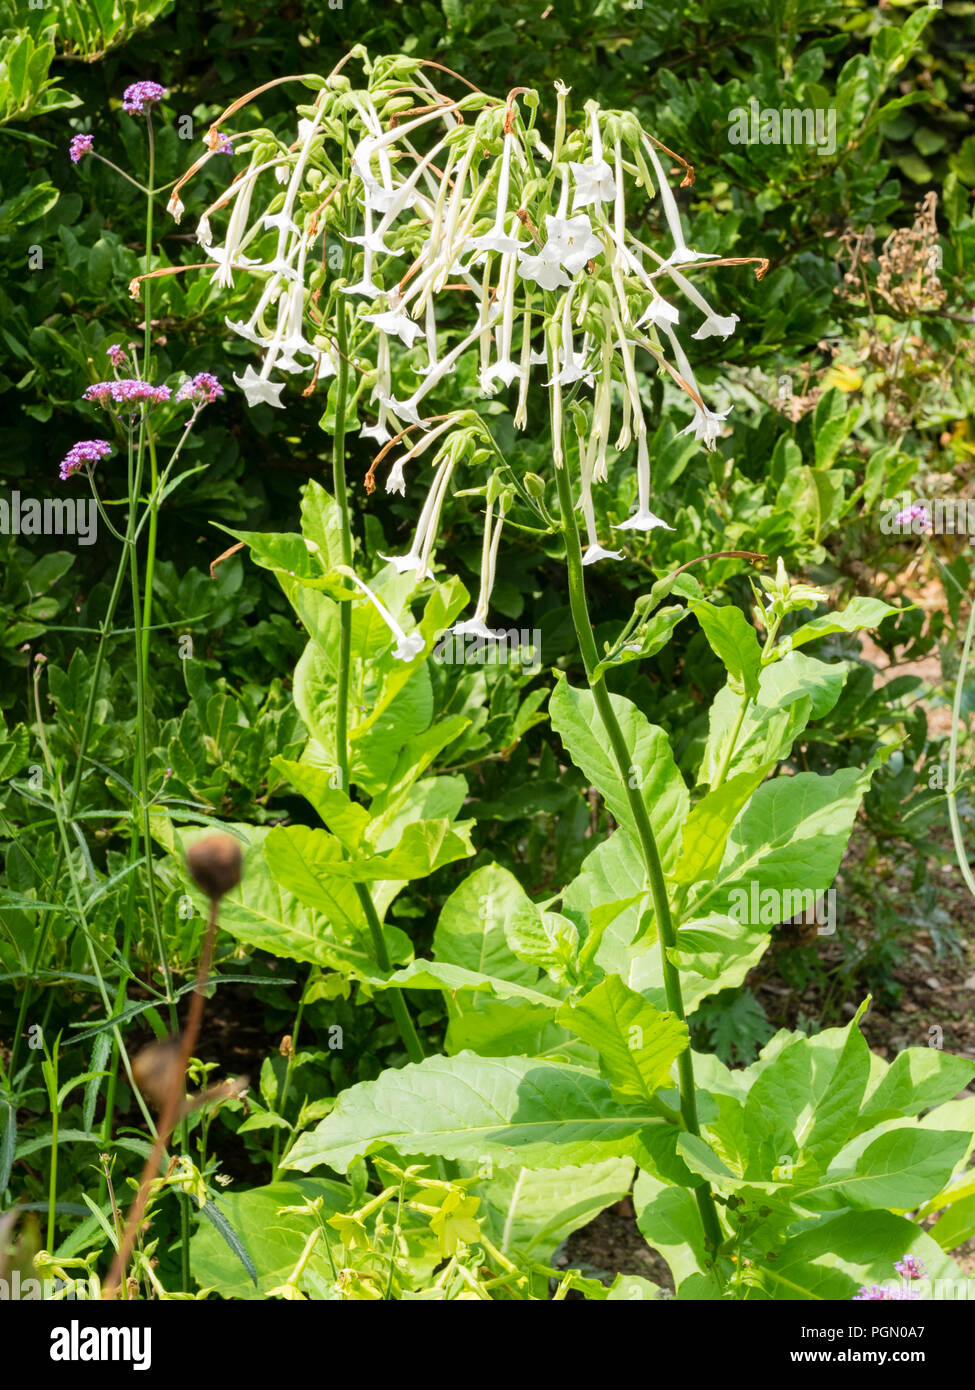 Scented, tubular white flowers of the tender biennial tobacco plant, Nicotiana sylvestris - Stock Image